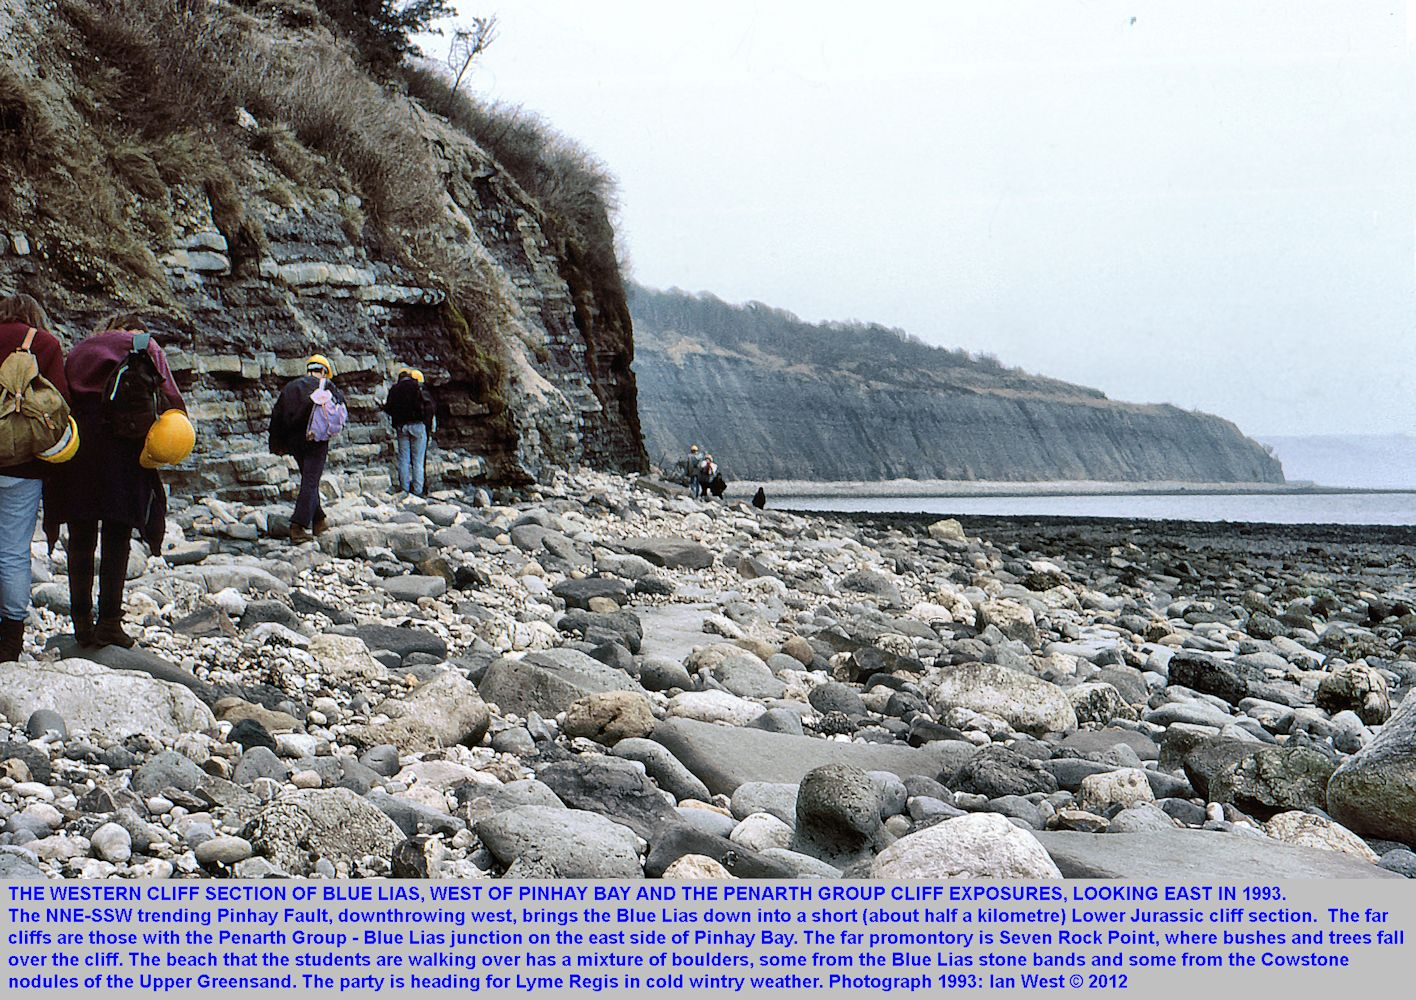 Blue Lias cliffs west of Pinhay Bay, west of Lyme Regis, Dorset, in 1993